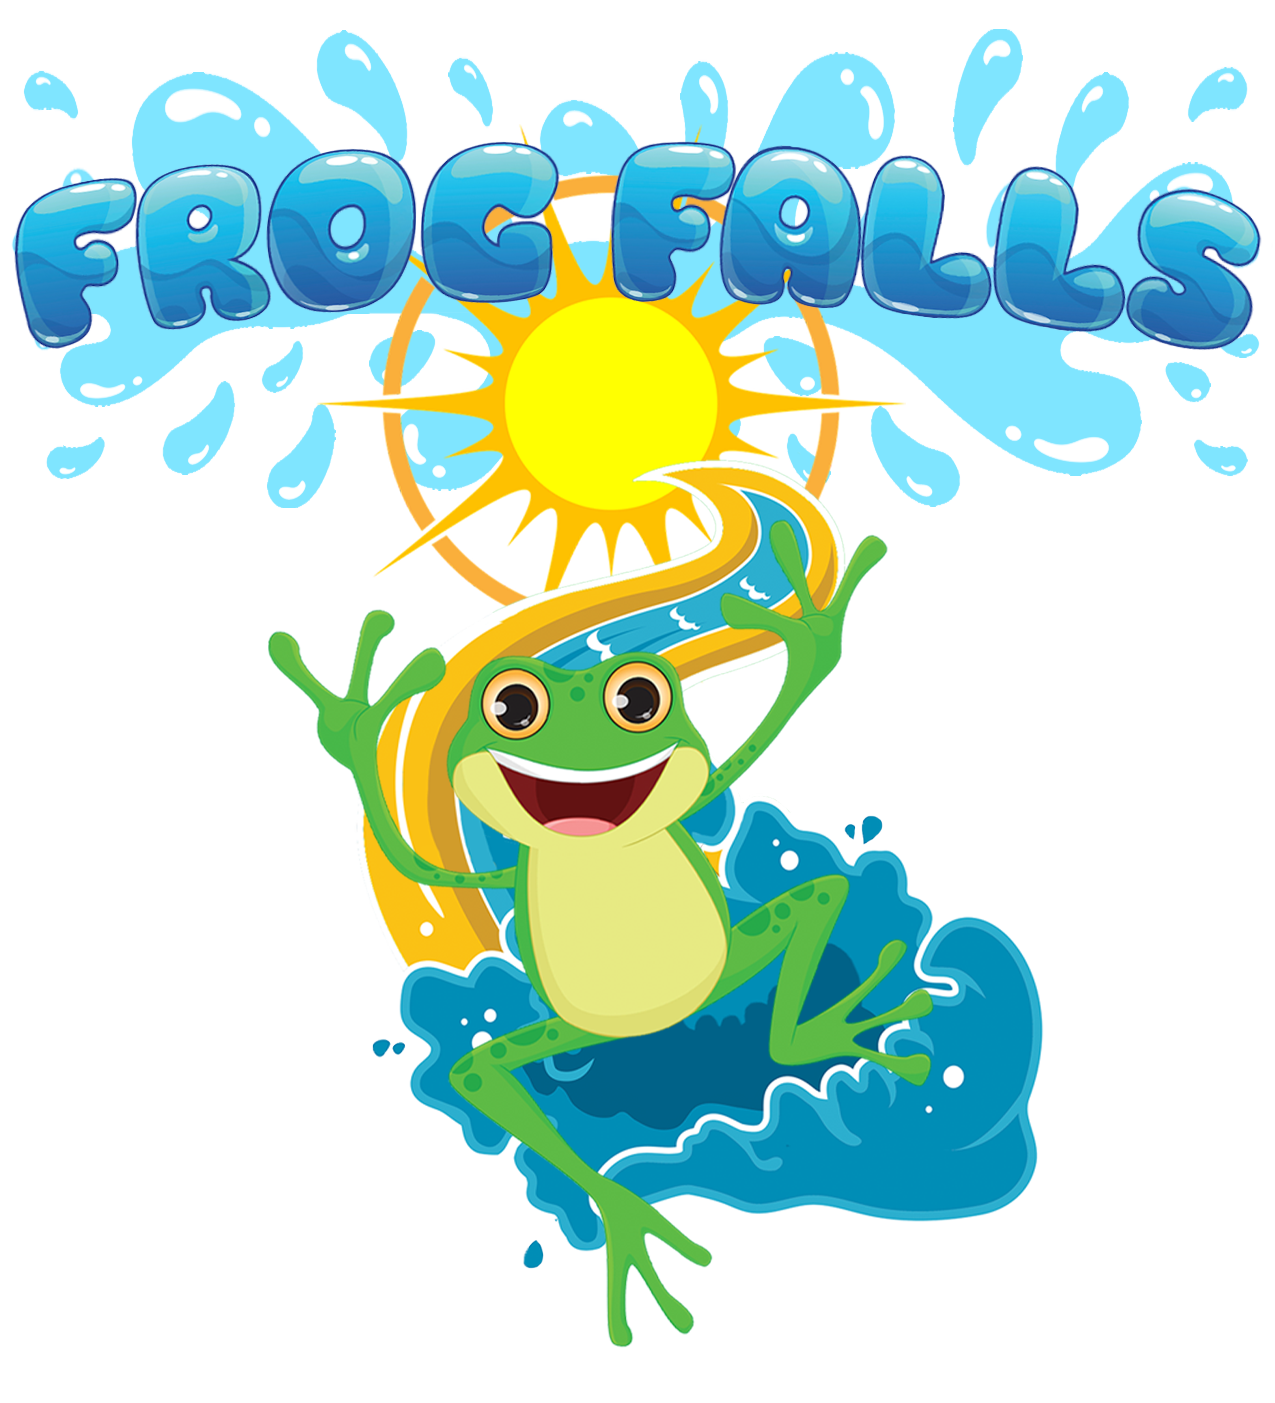 Party house clipart clipart stock Parties – Frog Falls clipart stock